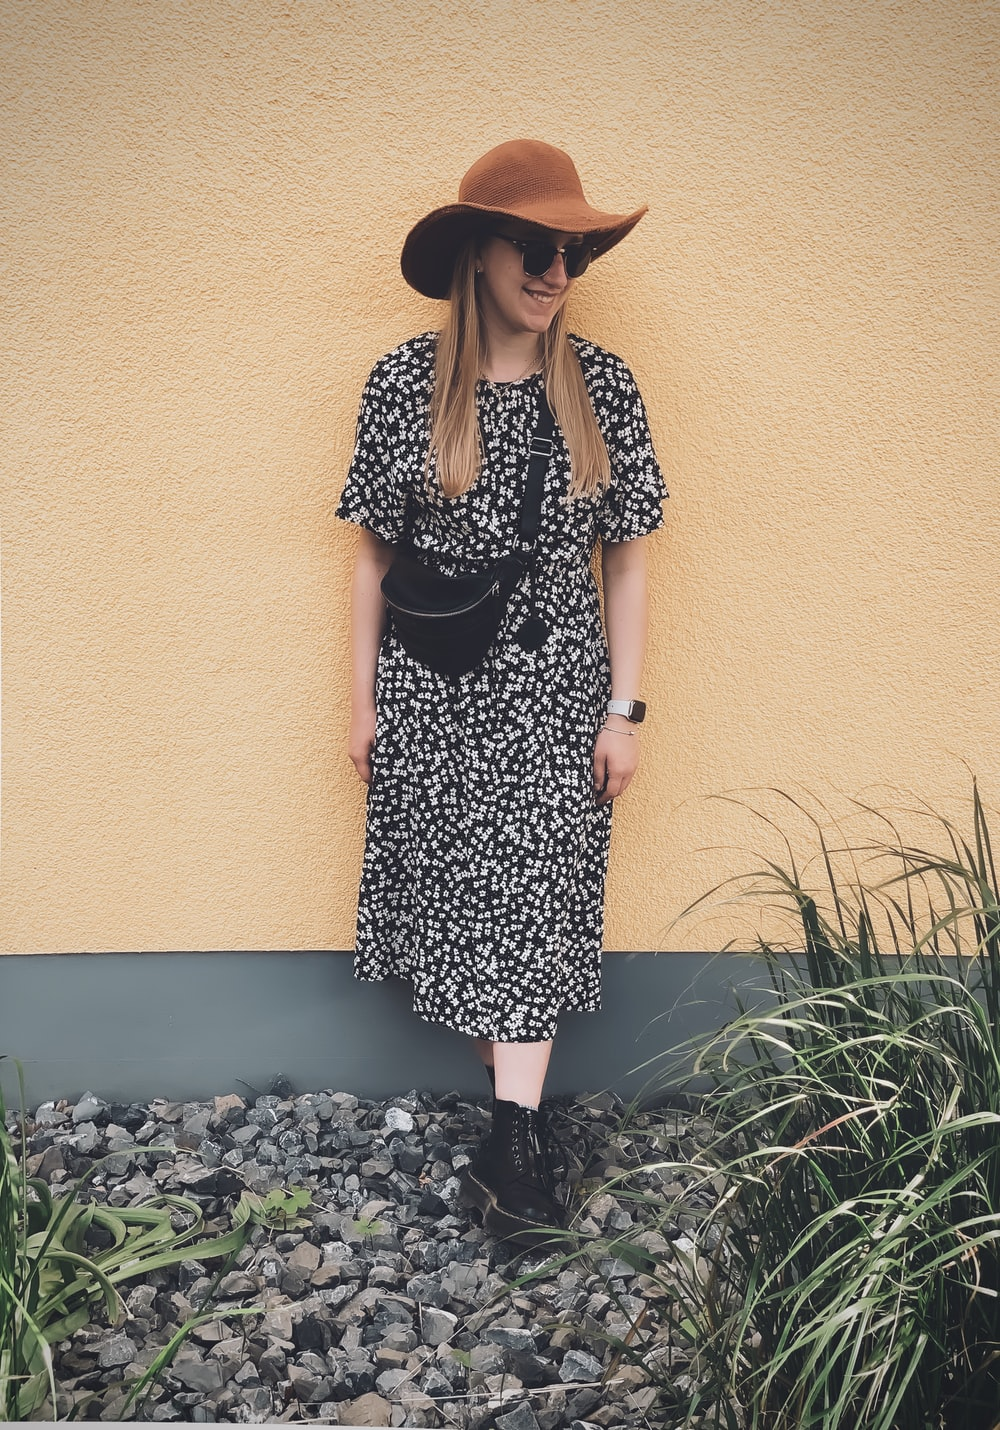 woman in black and white polka dot dress wearing brown sun hat standing beside green plants